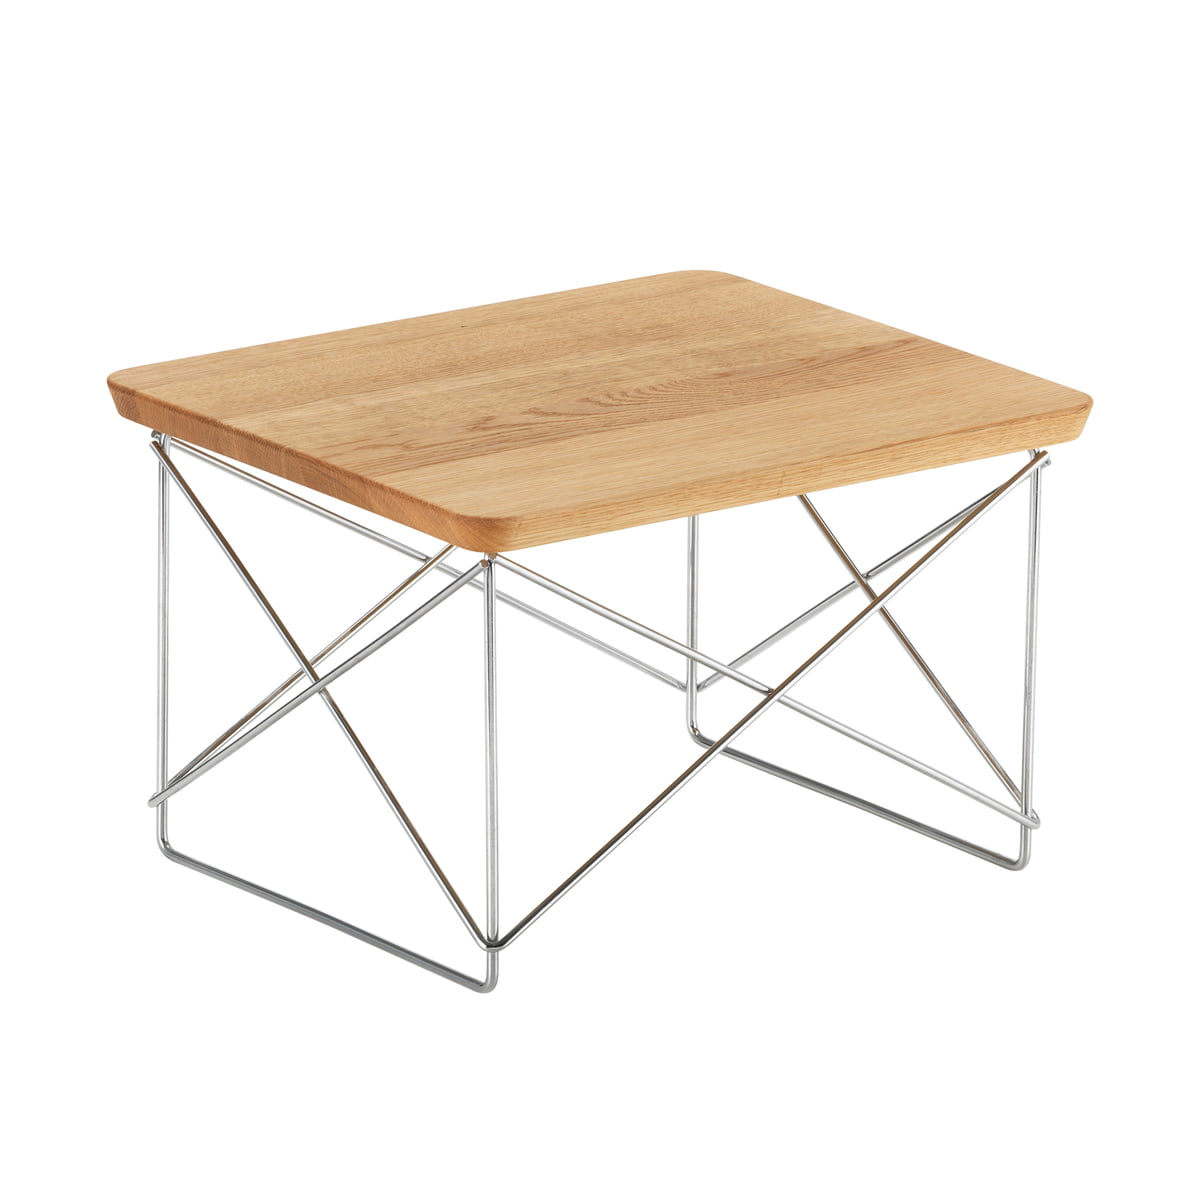 Eames occasional table ltr by vitra connox eames occasional table ltr by vitra in oak chrome keyboard keysfo Gallery